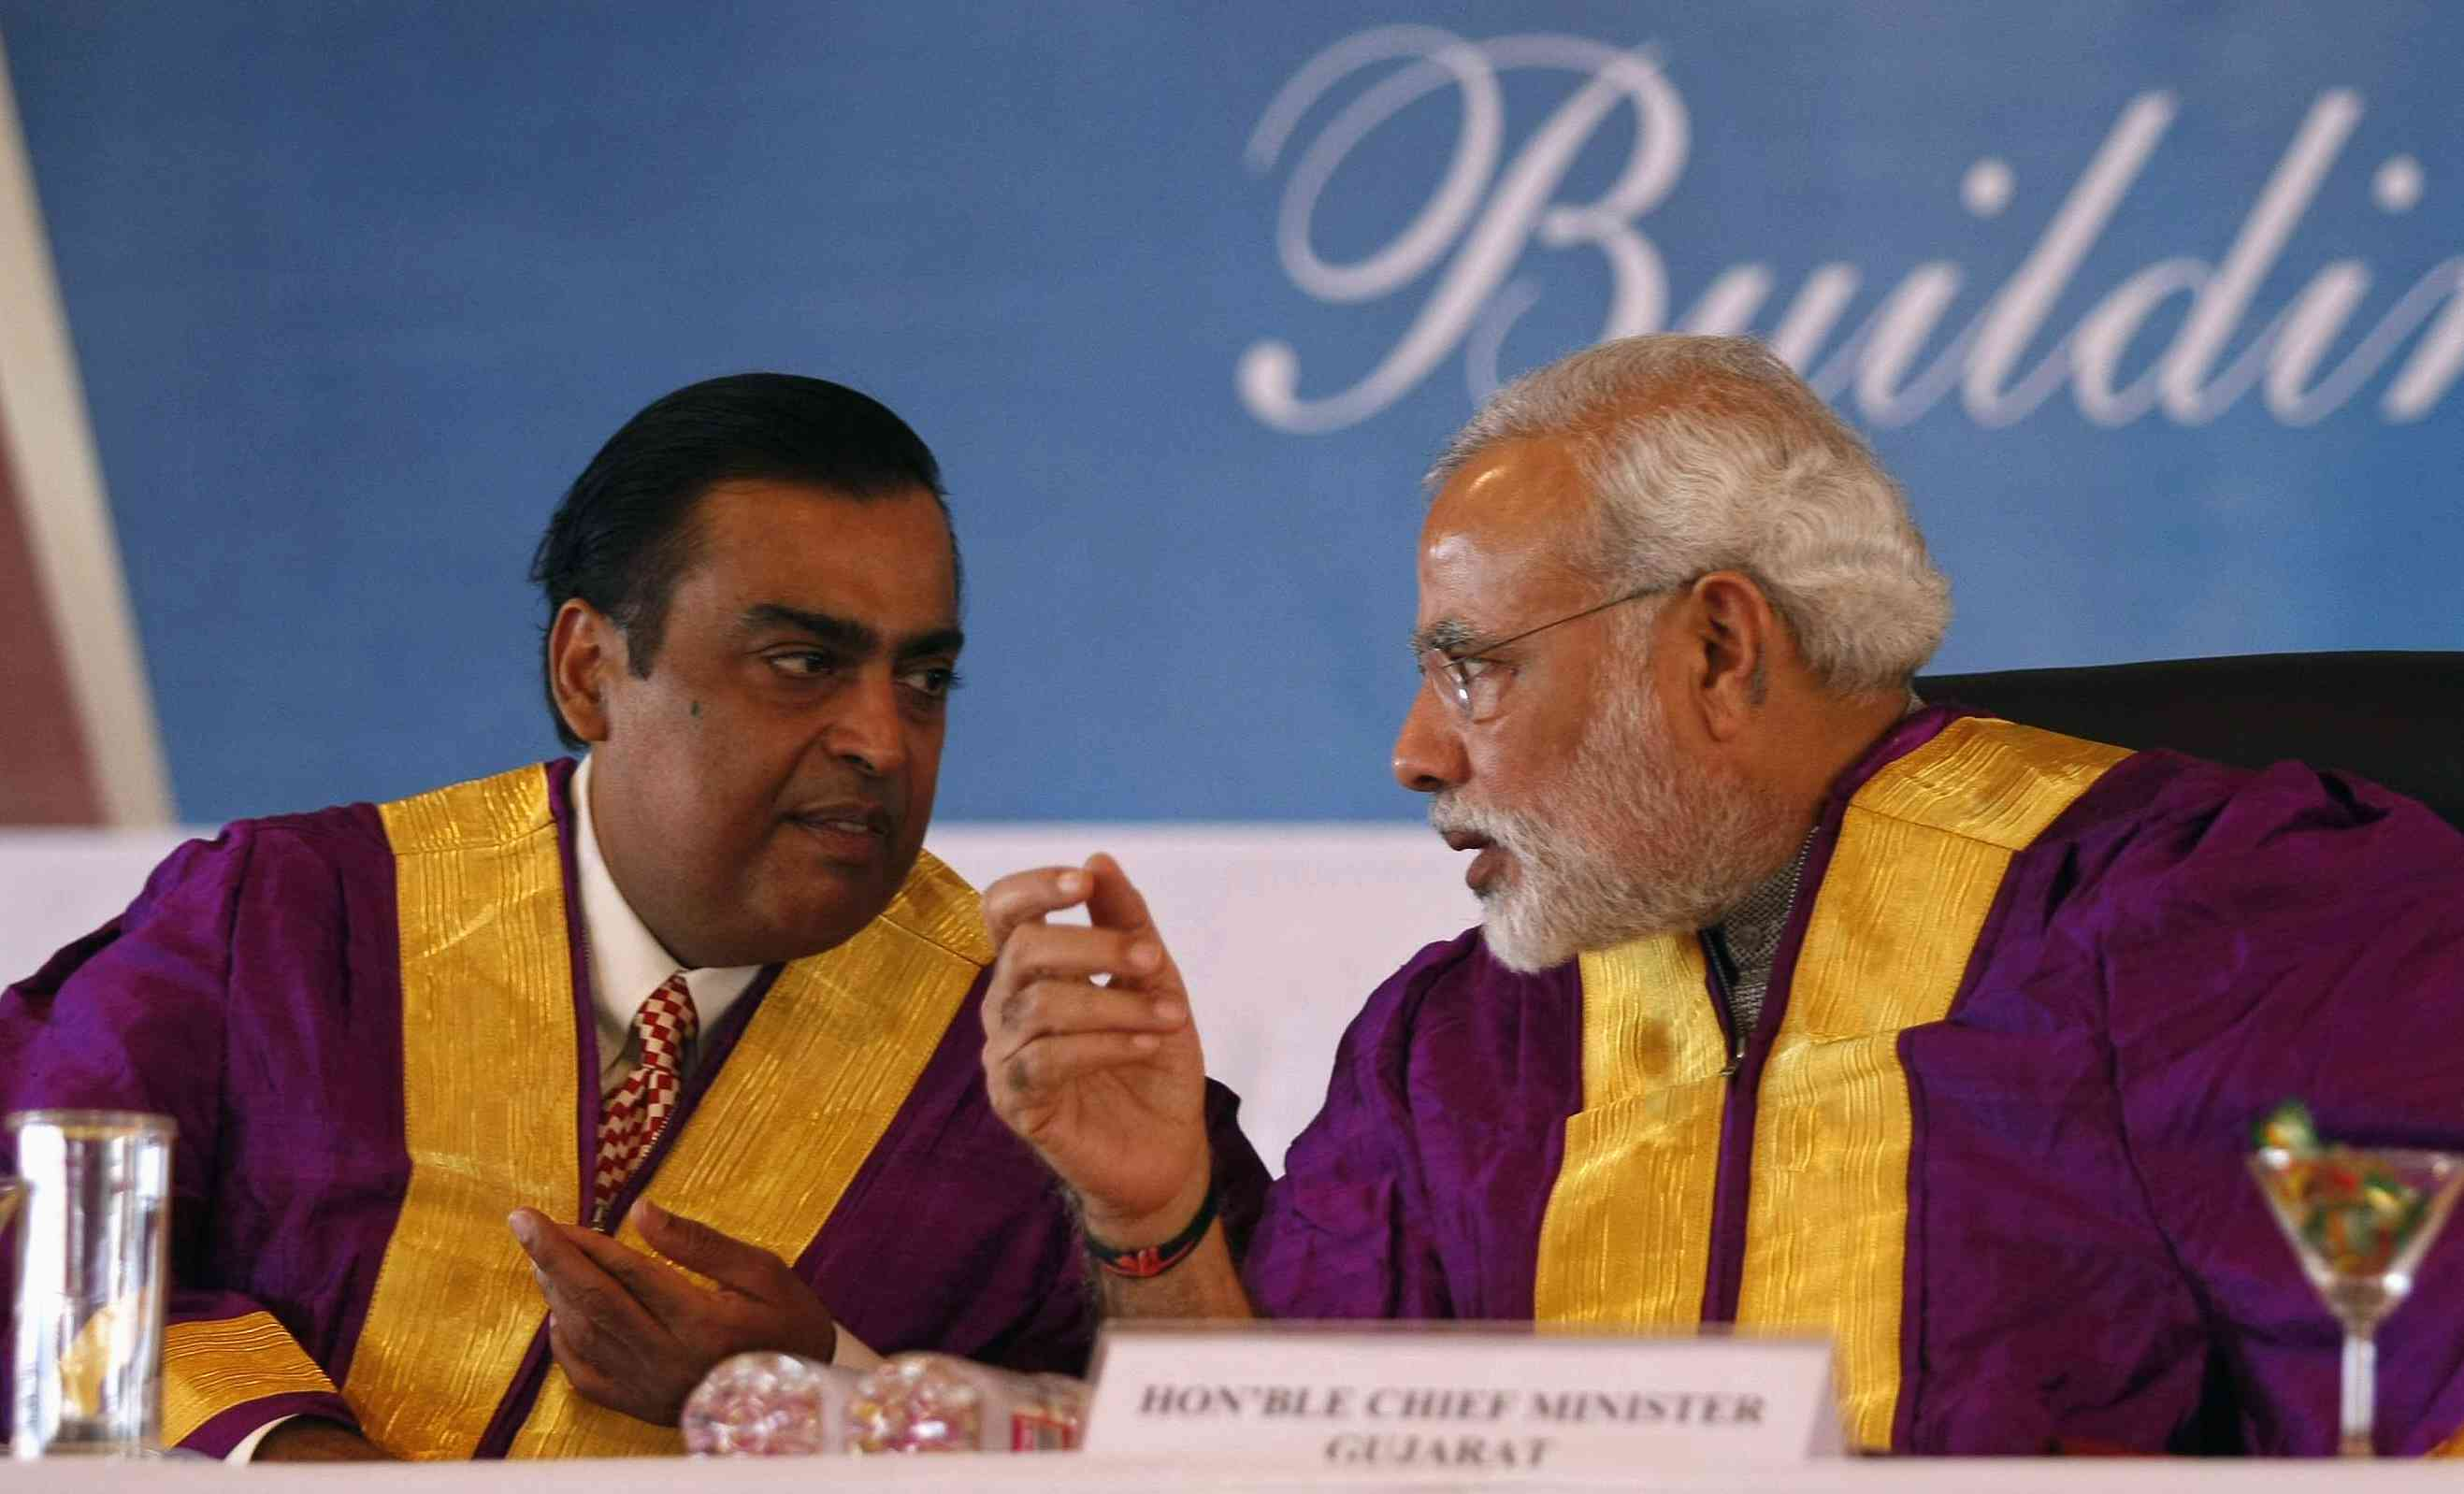 Narendra Modi with Mukesh Ambani during a convocation ceremony at Pandit Deendayal Petroleum University at Gandhinagar, Gujarat on October 19, 2013. Photo: REUTERS